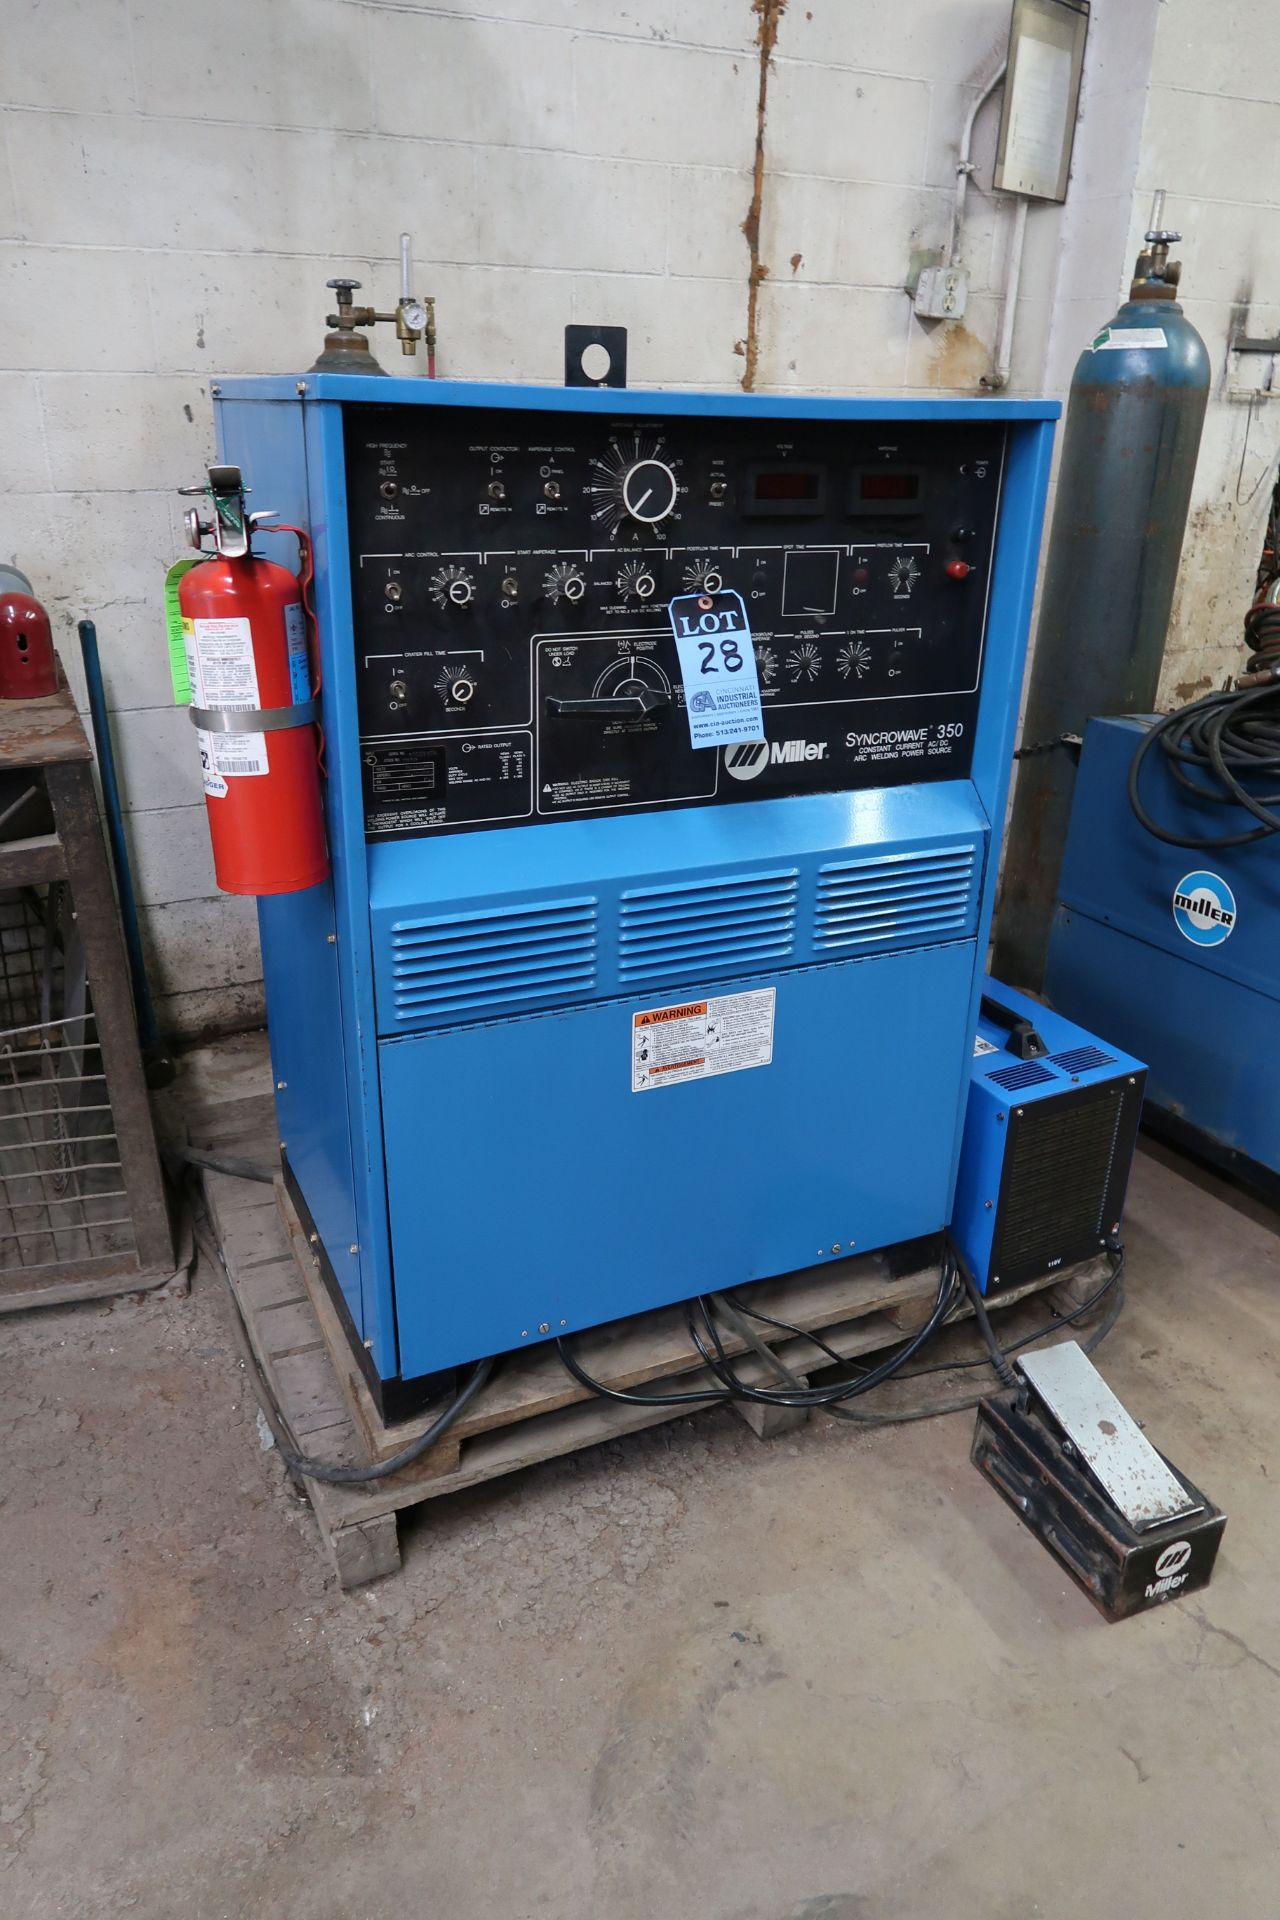 350 AMP MILLER SYNCROWAVE 350 CONSTANT CURRENT AC/DC ARC WELDING POWER SOURCE; S/N KA885504, WITH